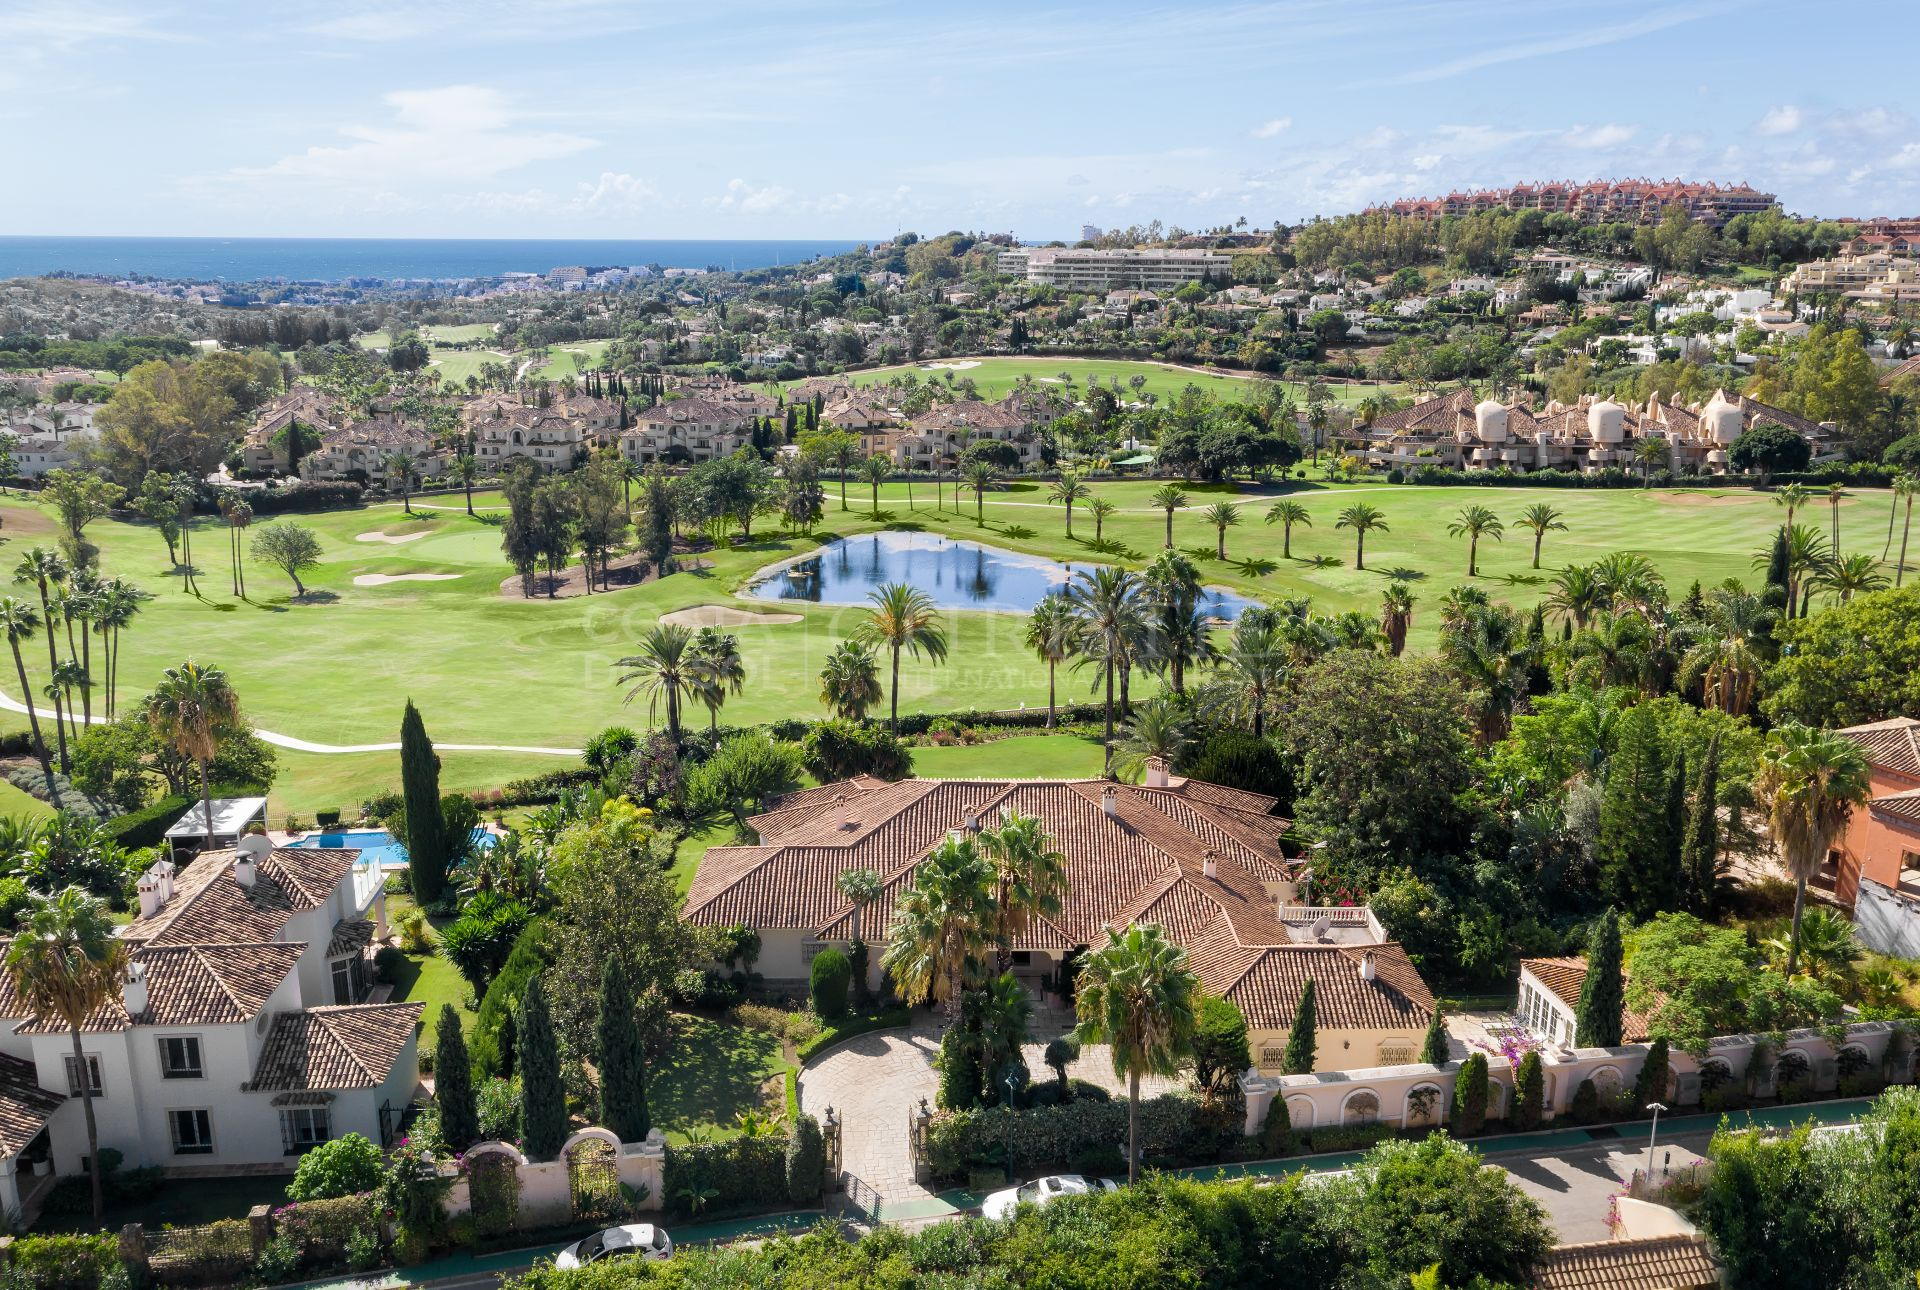 Request information about PRIVATE SALE listings in Nueva Andalucia | Christie's International Real Estate